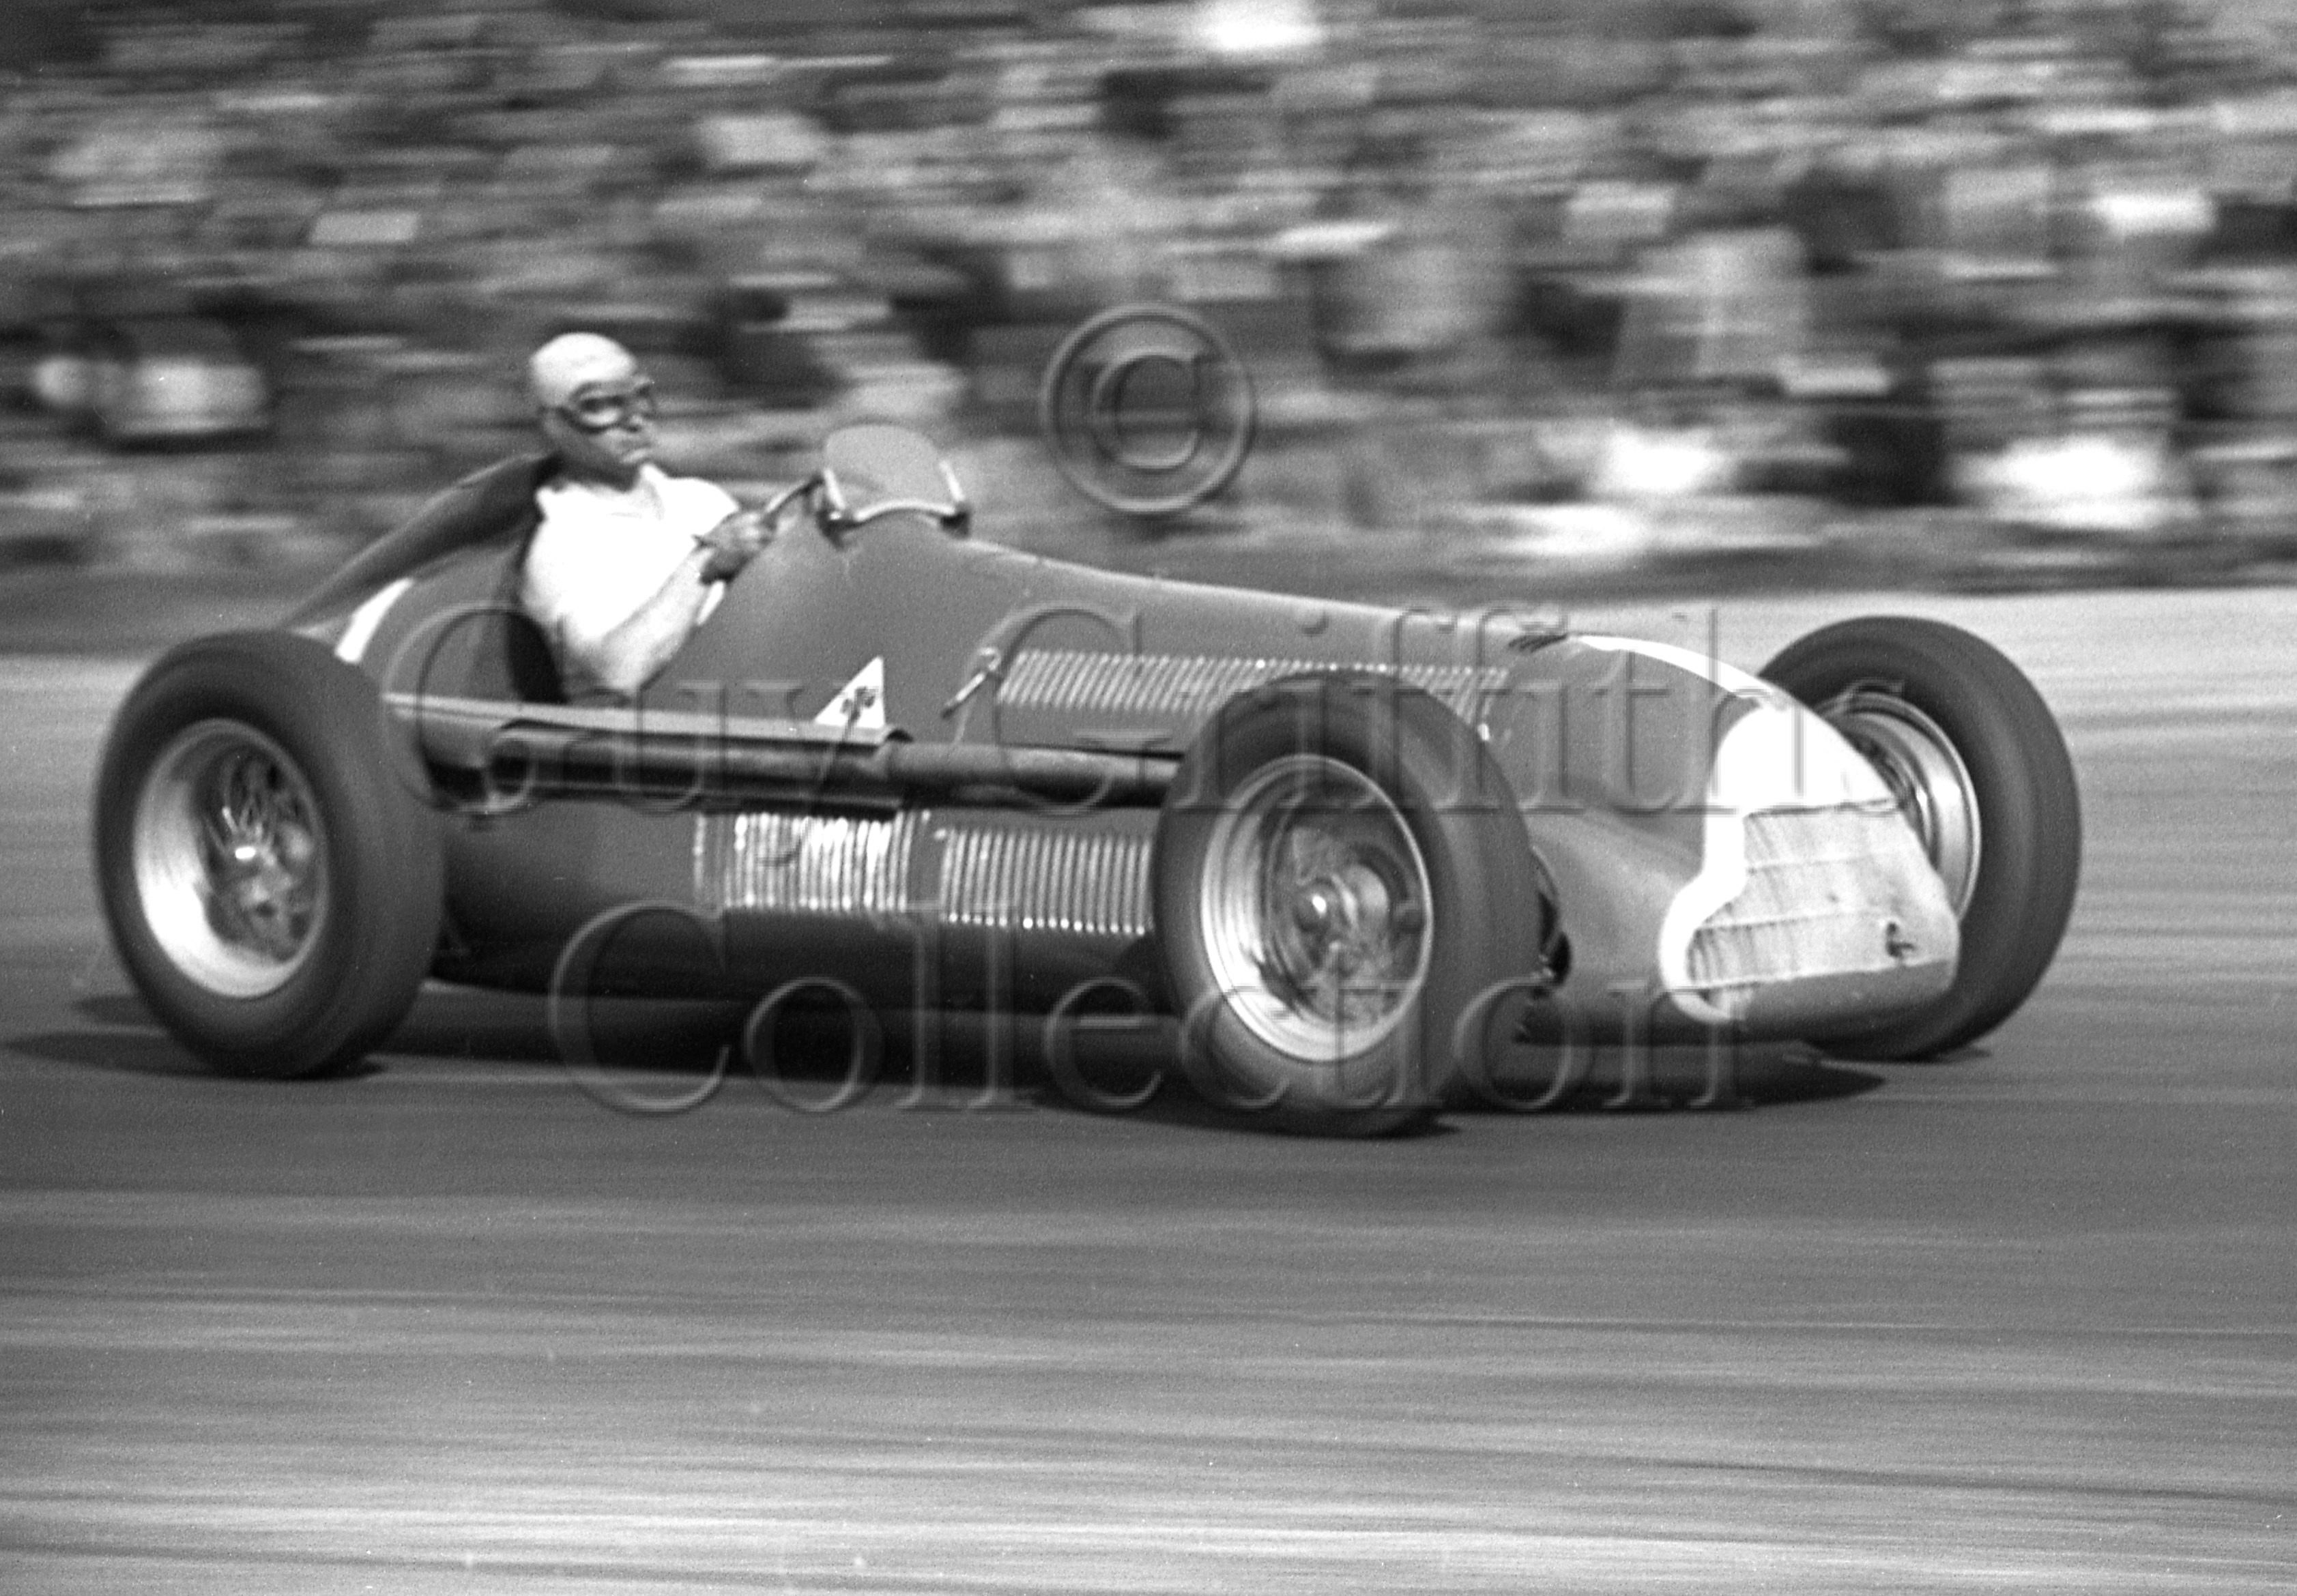 30-145–J-Fangio–Alfa-Romeo-158–Silverstone–13-05-1950.jpg - The Guy Griffiths Collection